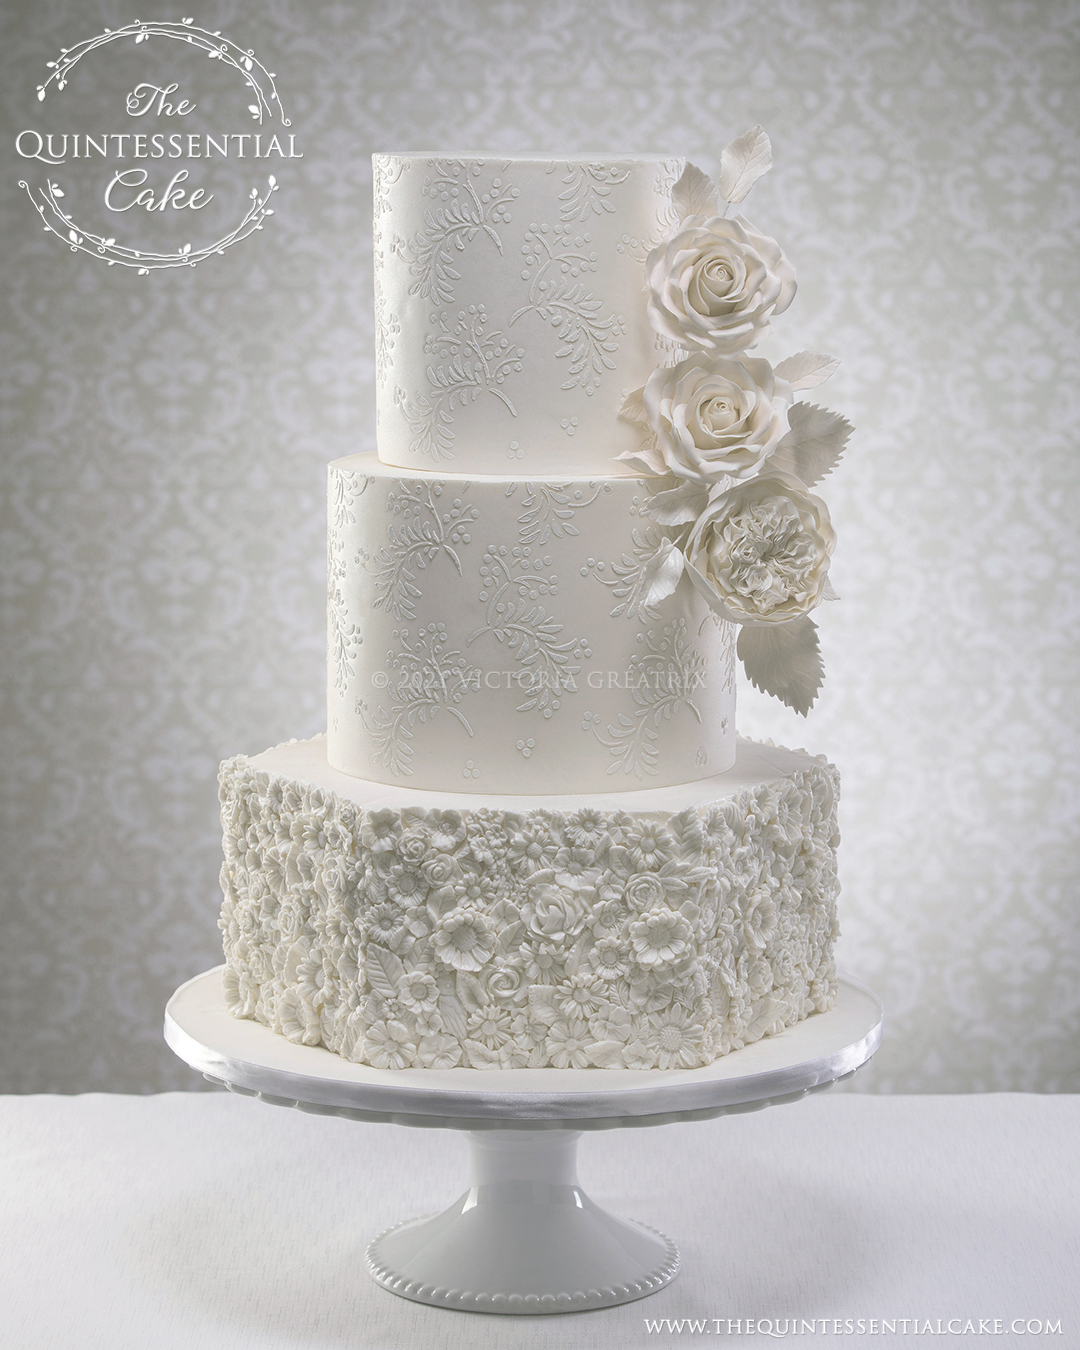 White Bas Relief Wedding Cake with Sugar Roses   The Quintessential Cake  Edward Fox Photography   Chicago Style Weddings  